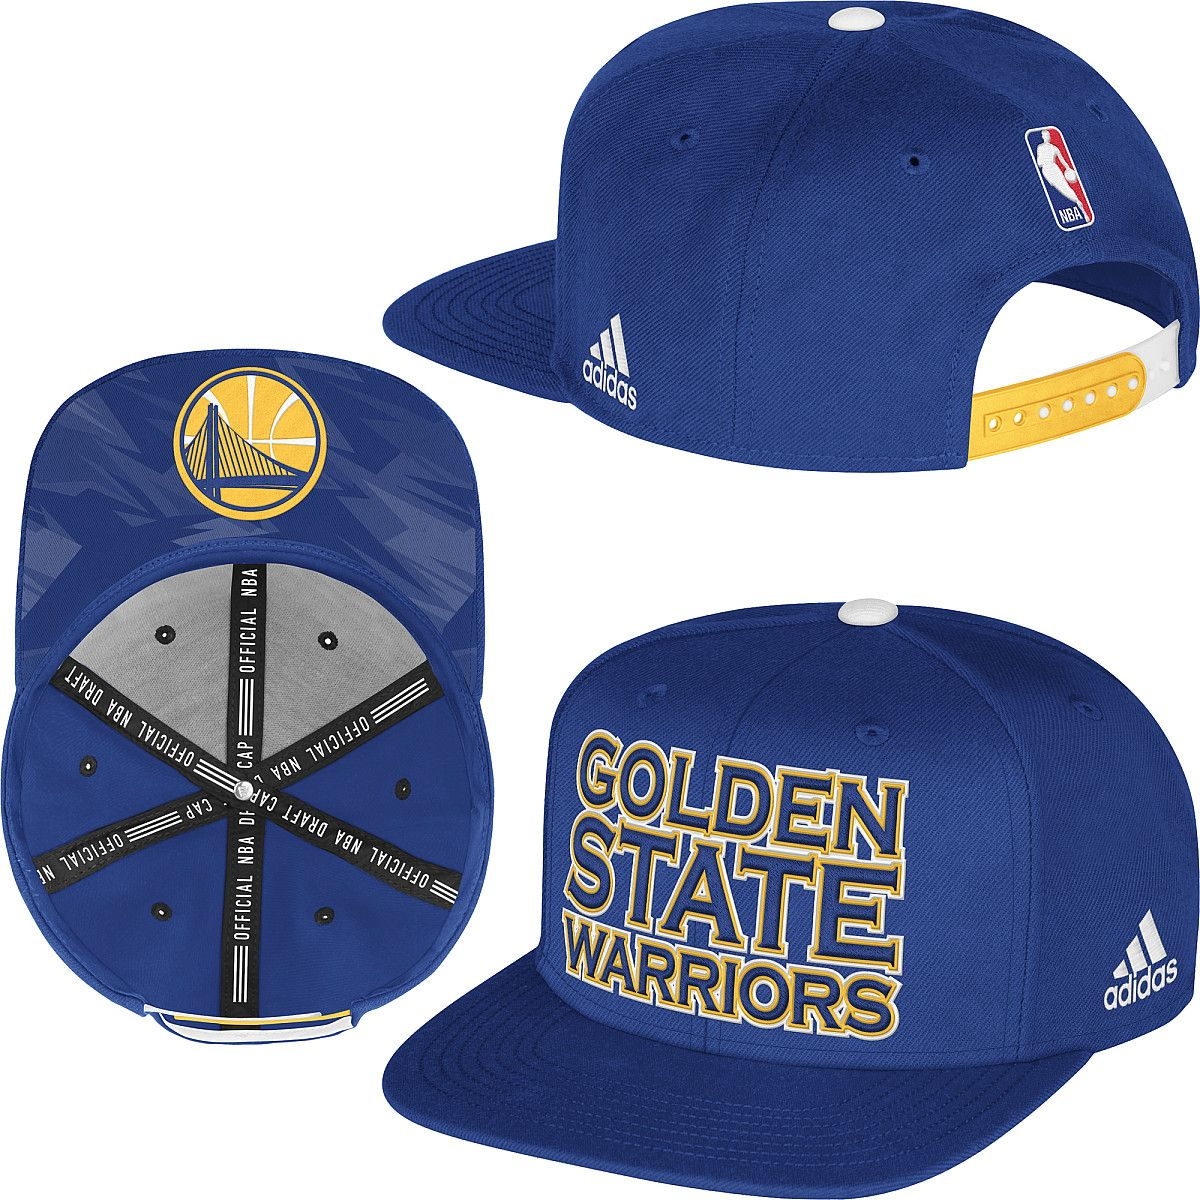 look for 100% authentic usa cheap sale adidas Golden State Warriors 2013 Authentic NBA Draft Snapback Hat ...